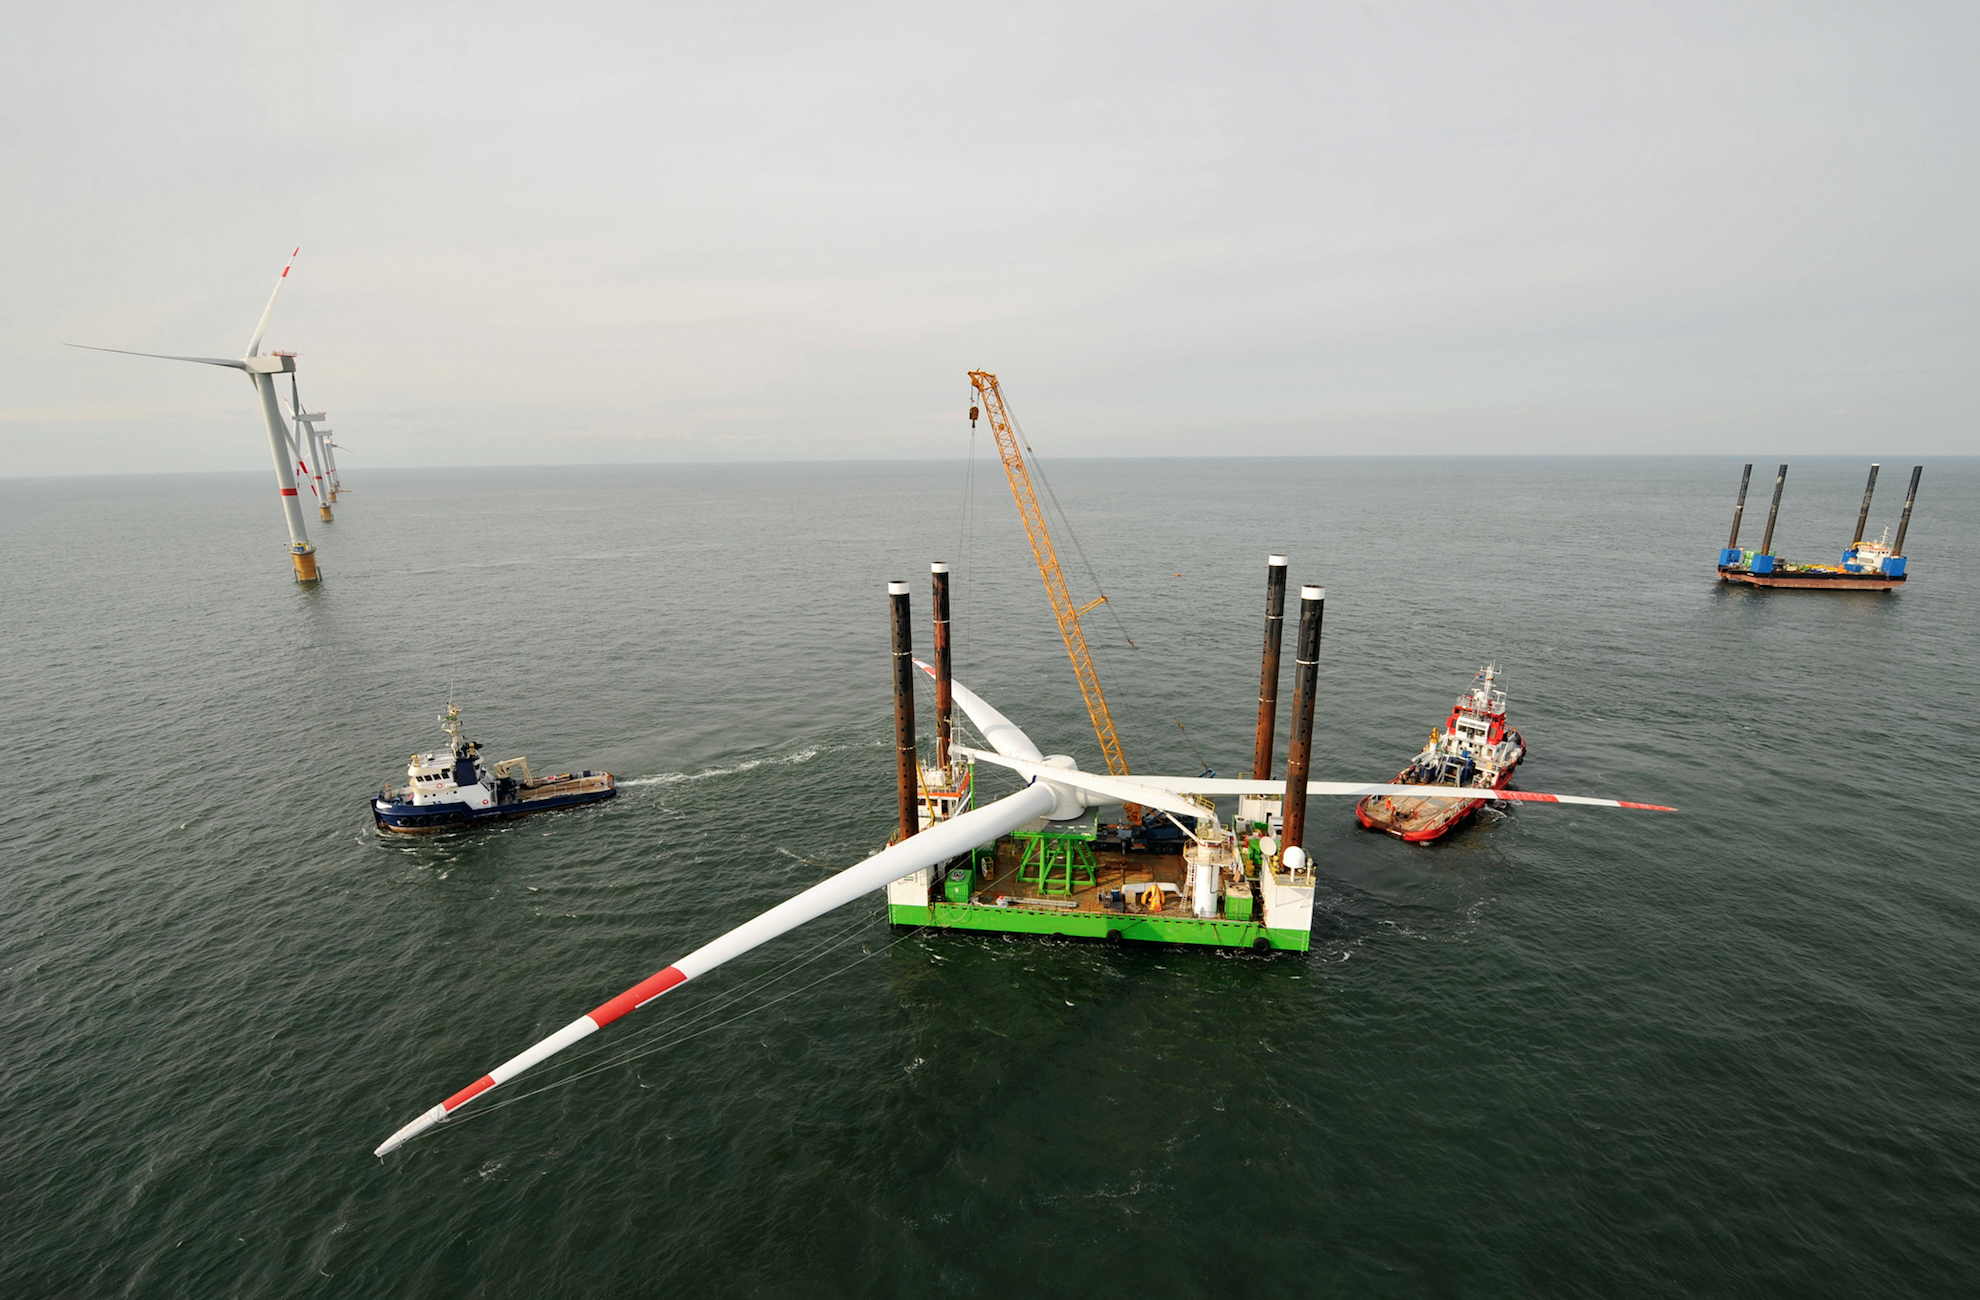 The Top 5 Emerging Markets for Offshore Wind